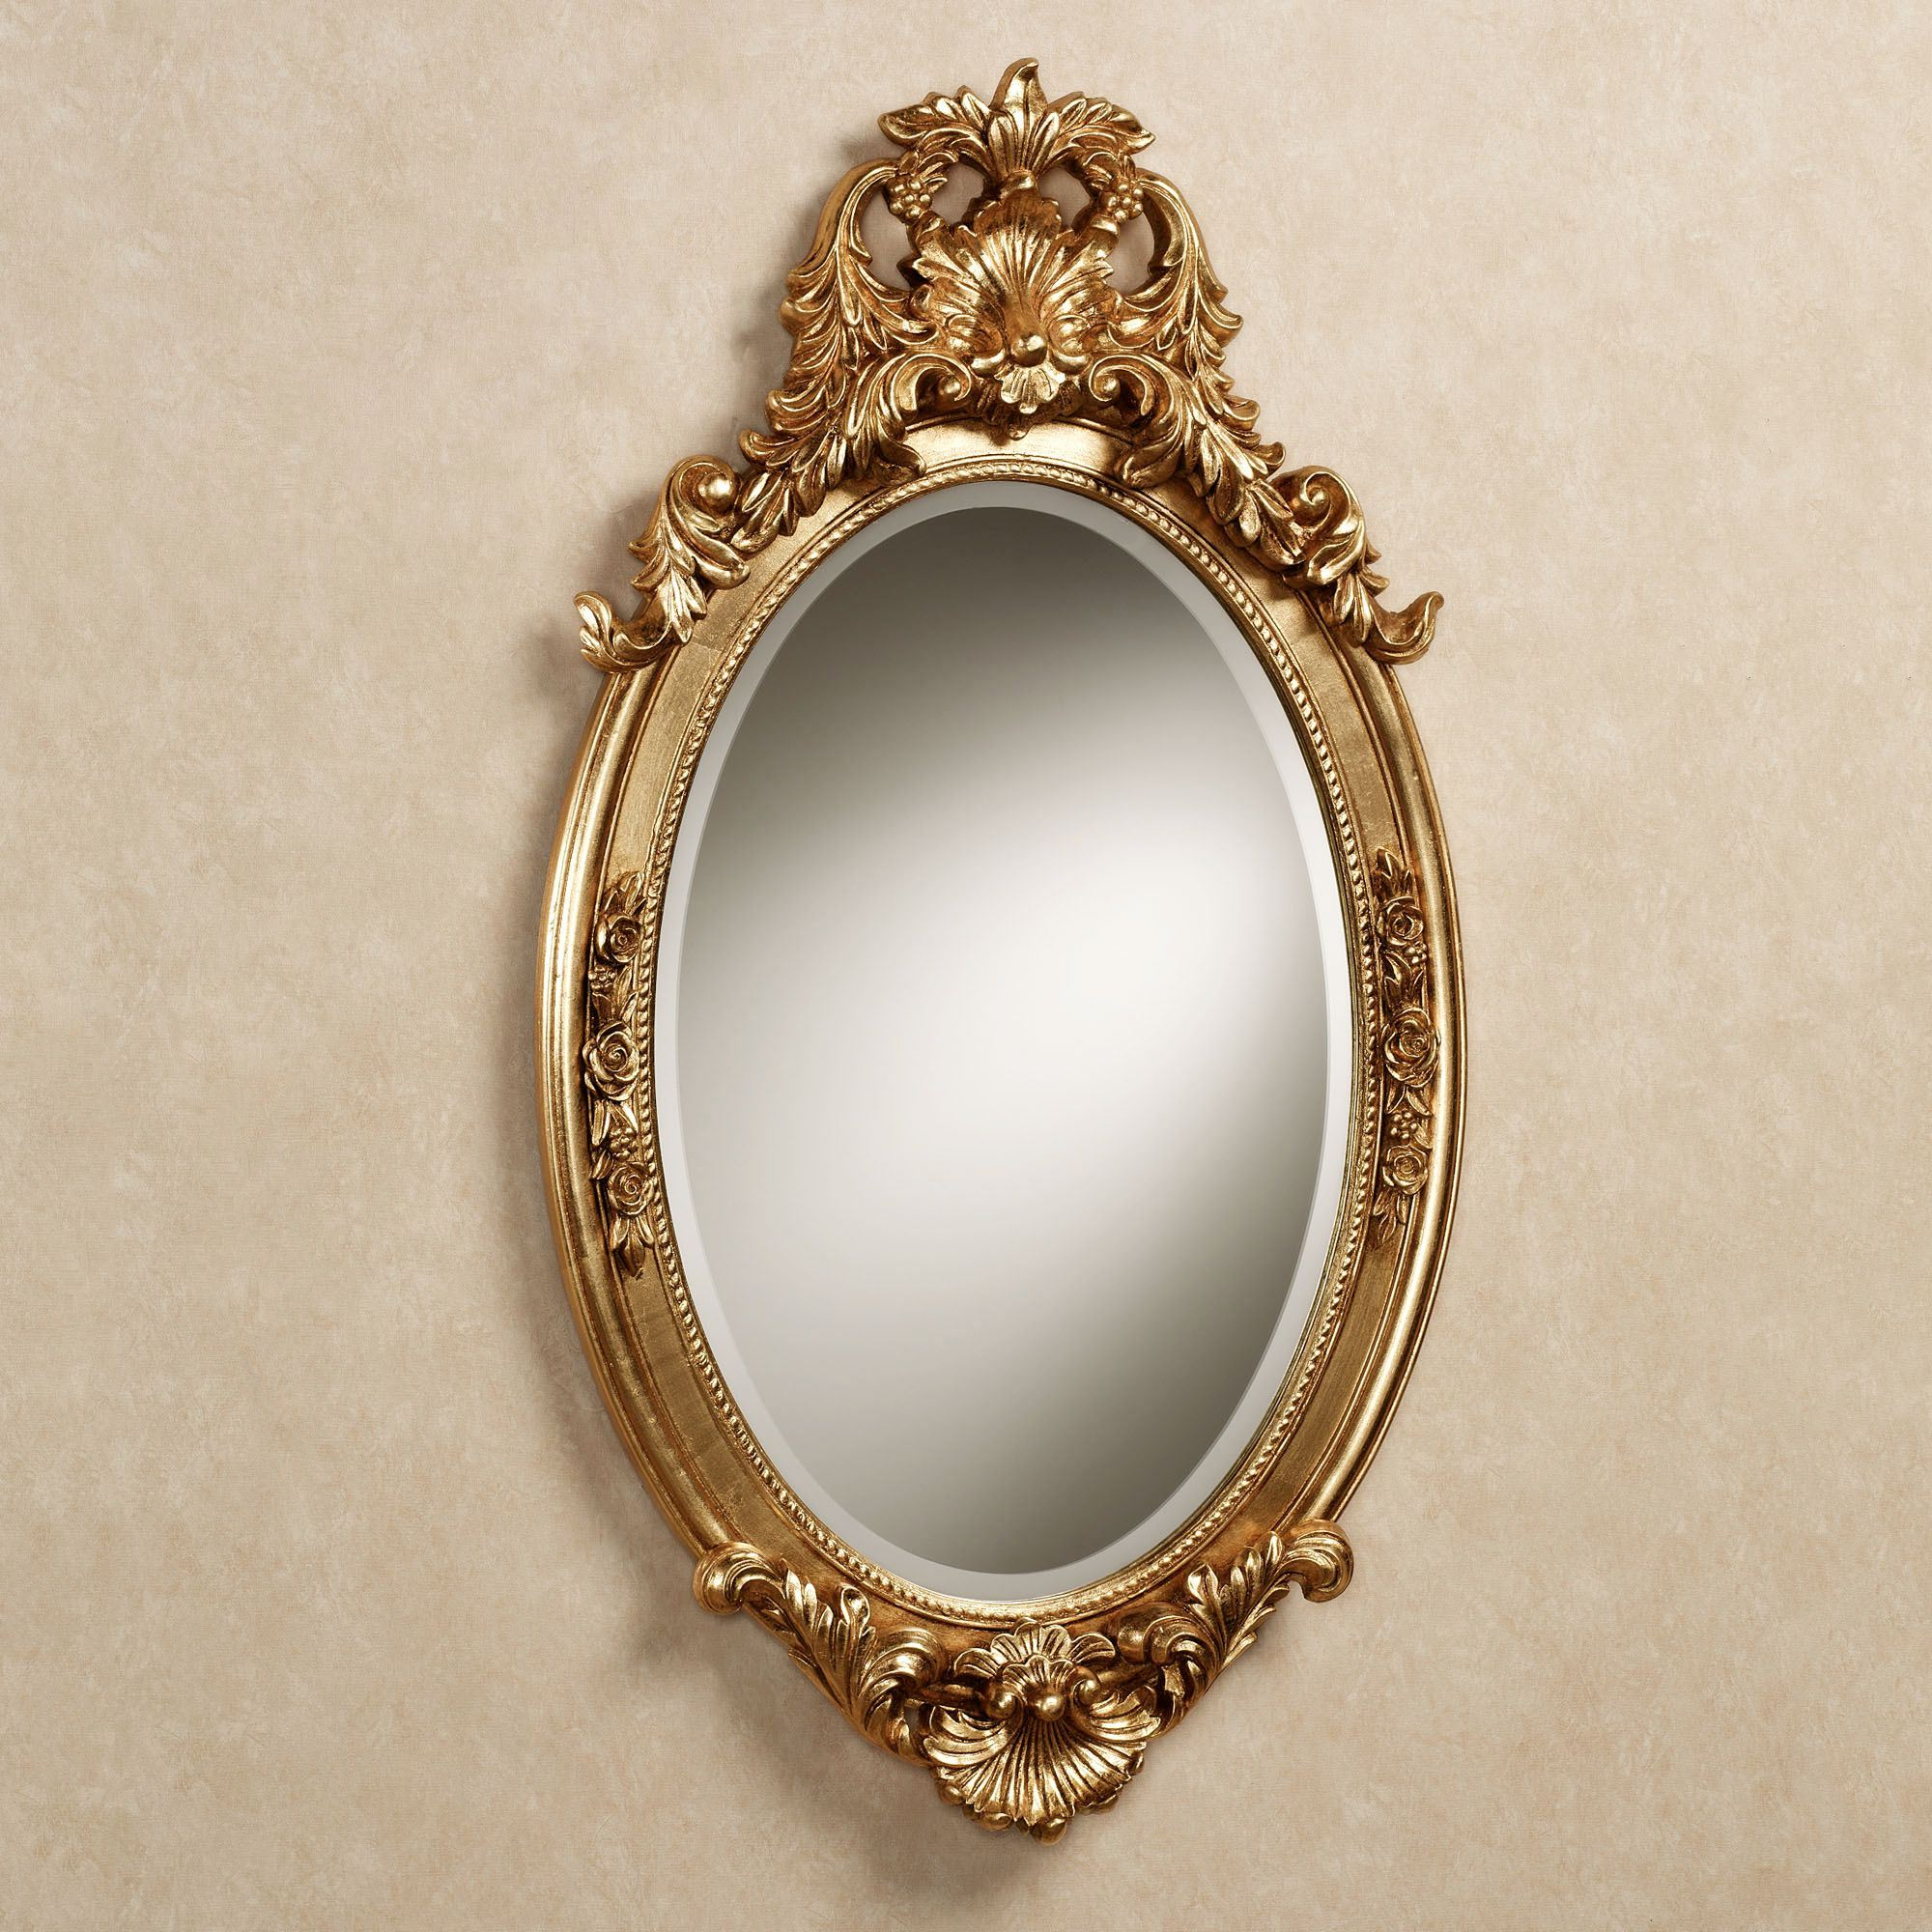 Hallandale Acanthus Leaf Oval Wall Mirror Inside Famous Antique Gold Wall Mirrors (View 6 of 20)